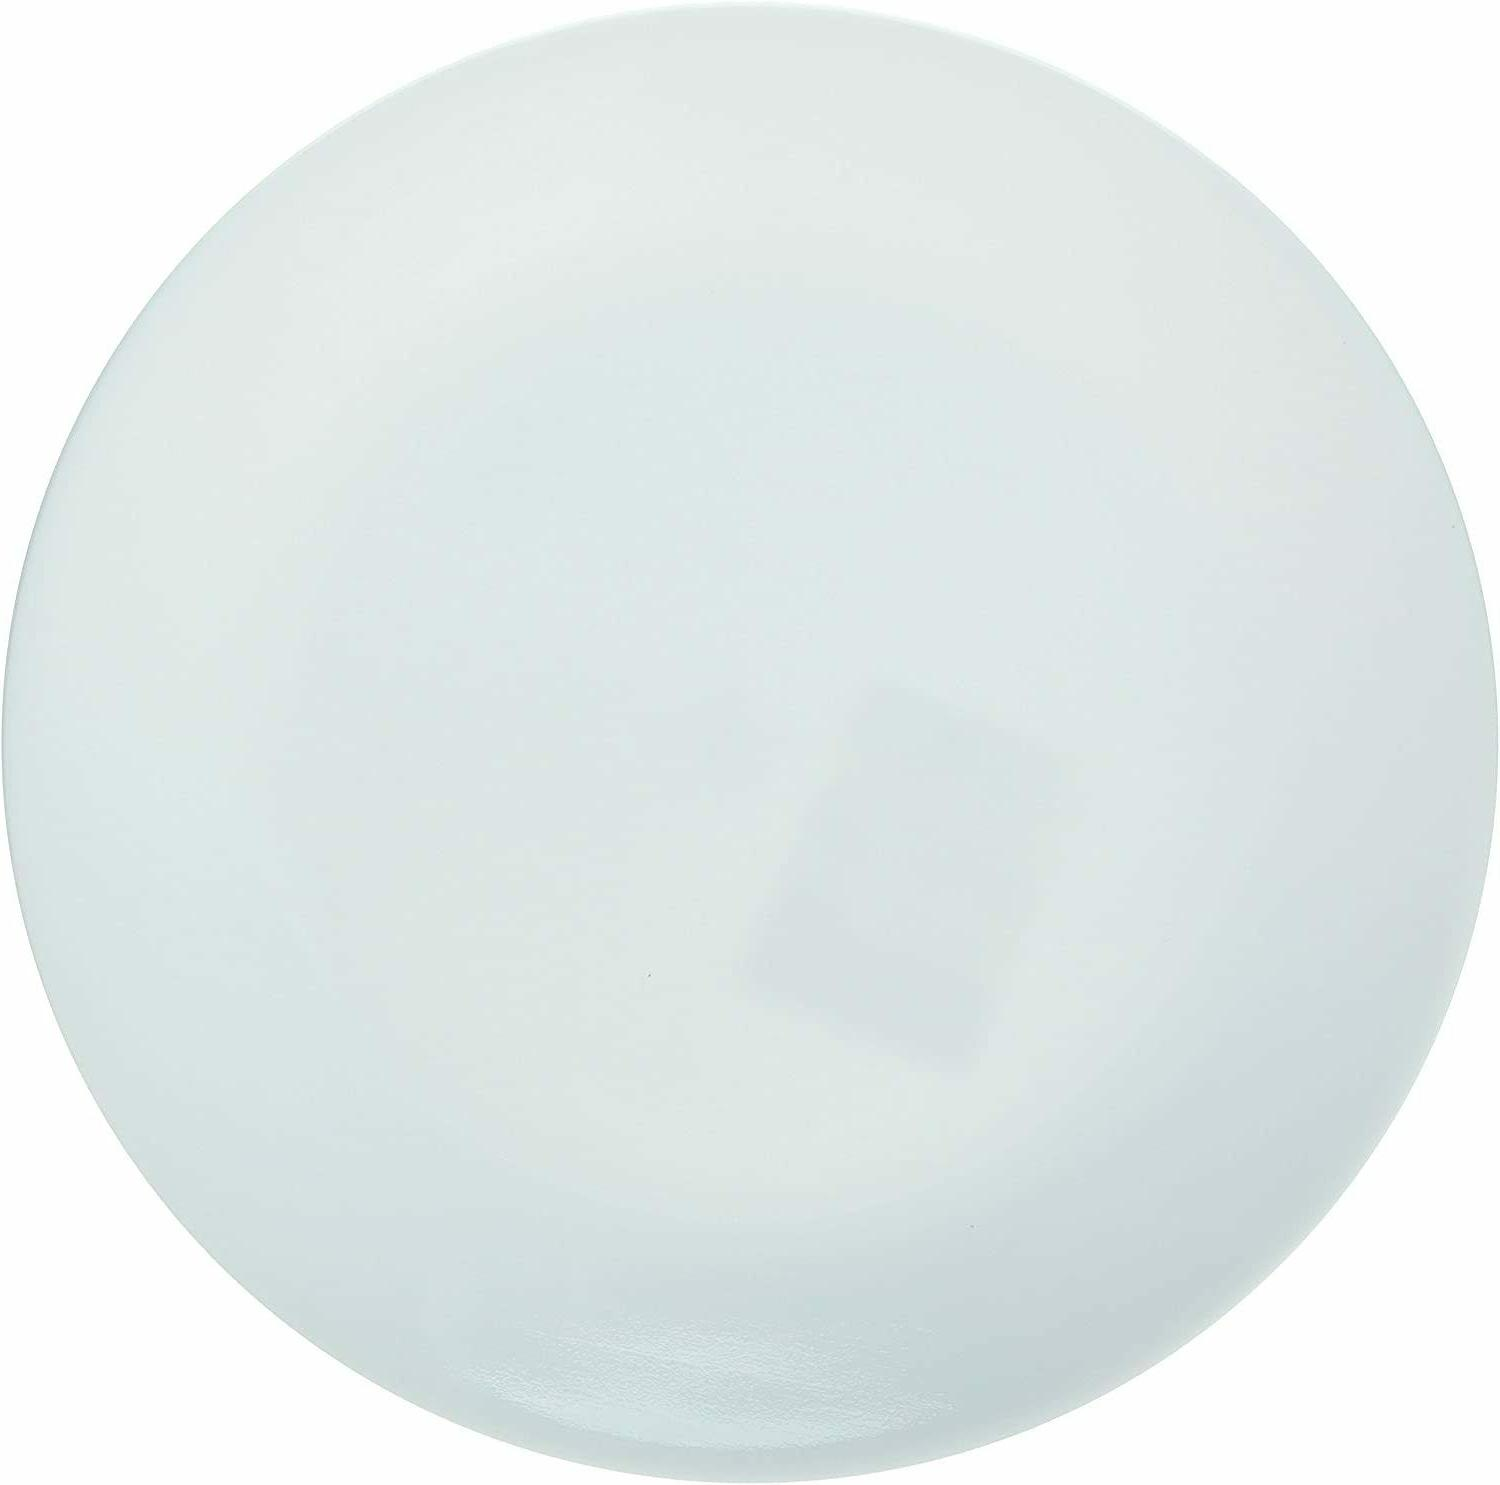 "Winter Frost Plates White Dinner 10-1/4"" Dia. , 1-Pack - Bra"